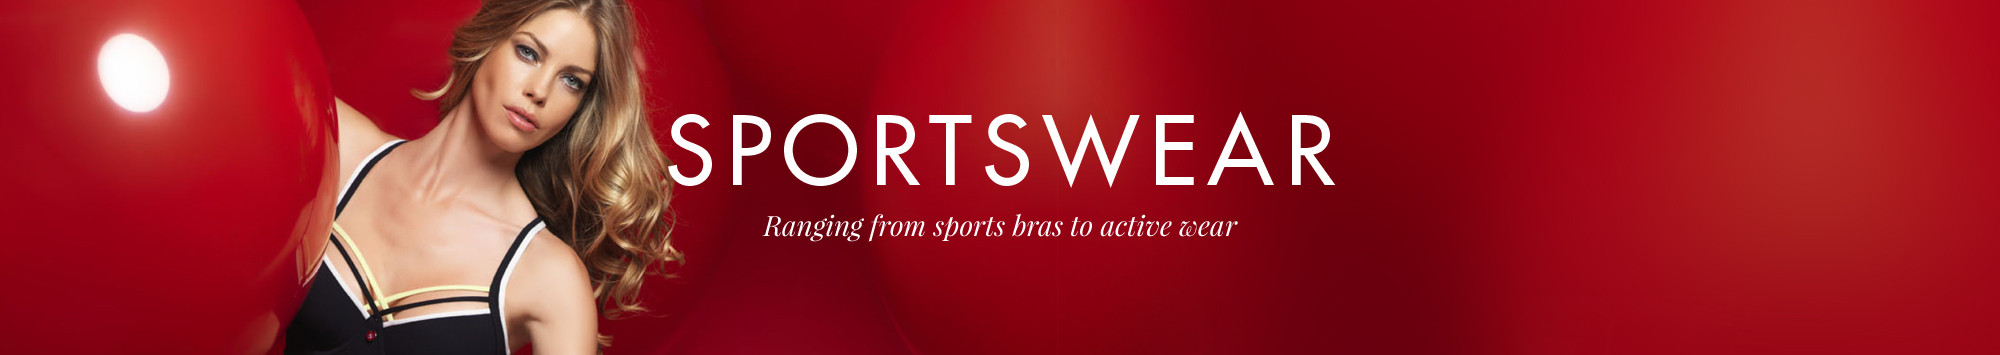 Sports Bras & Active Wear